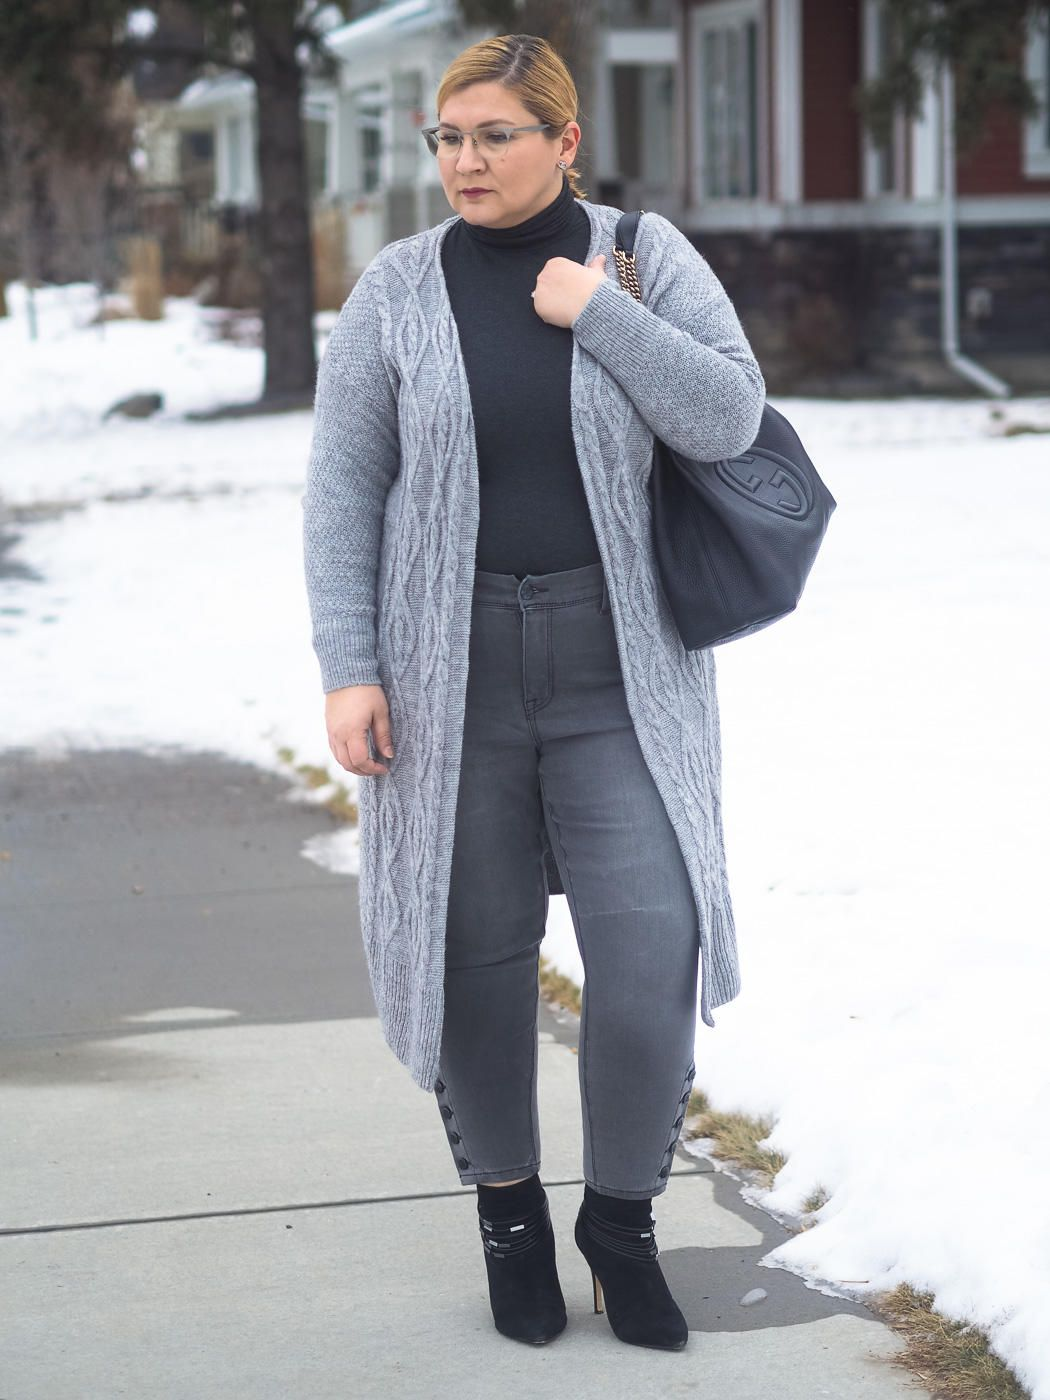 6d8d28d7f All grey outfit, skinny jeans, Gucci, cardigan, knitwear, winter fashion,